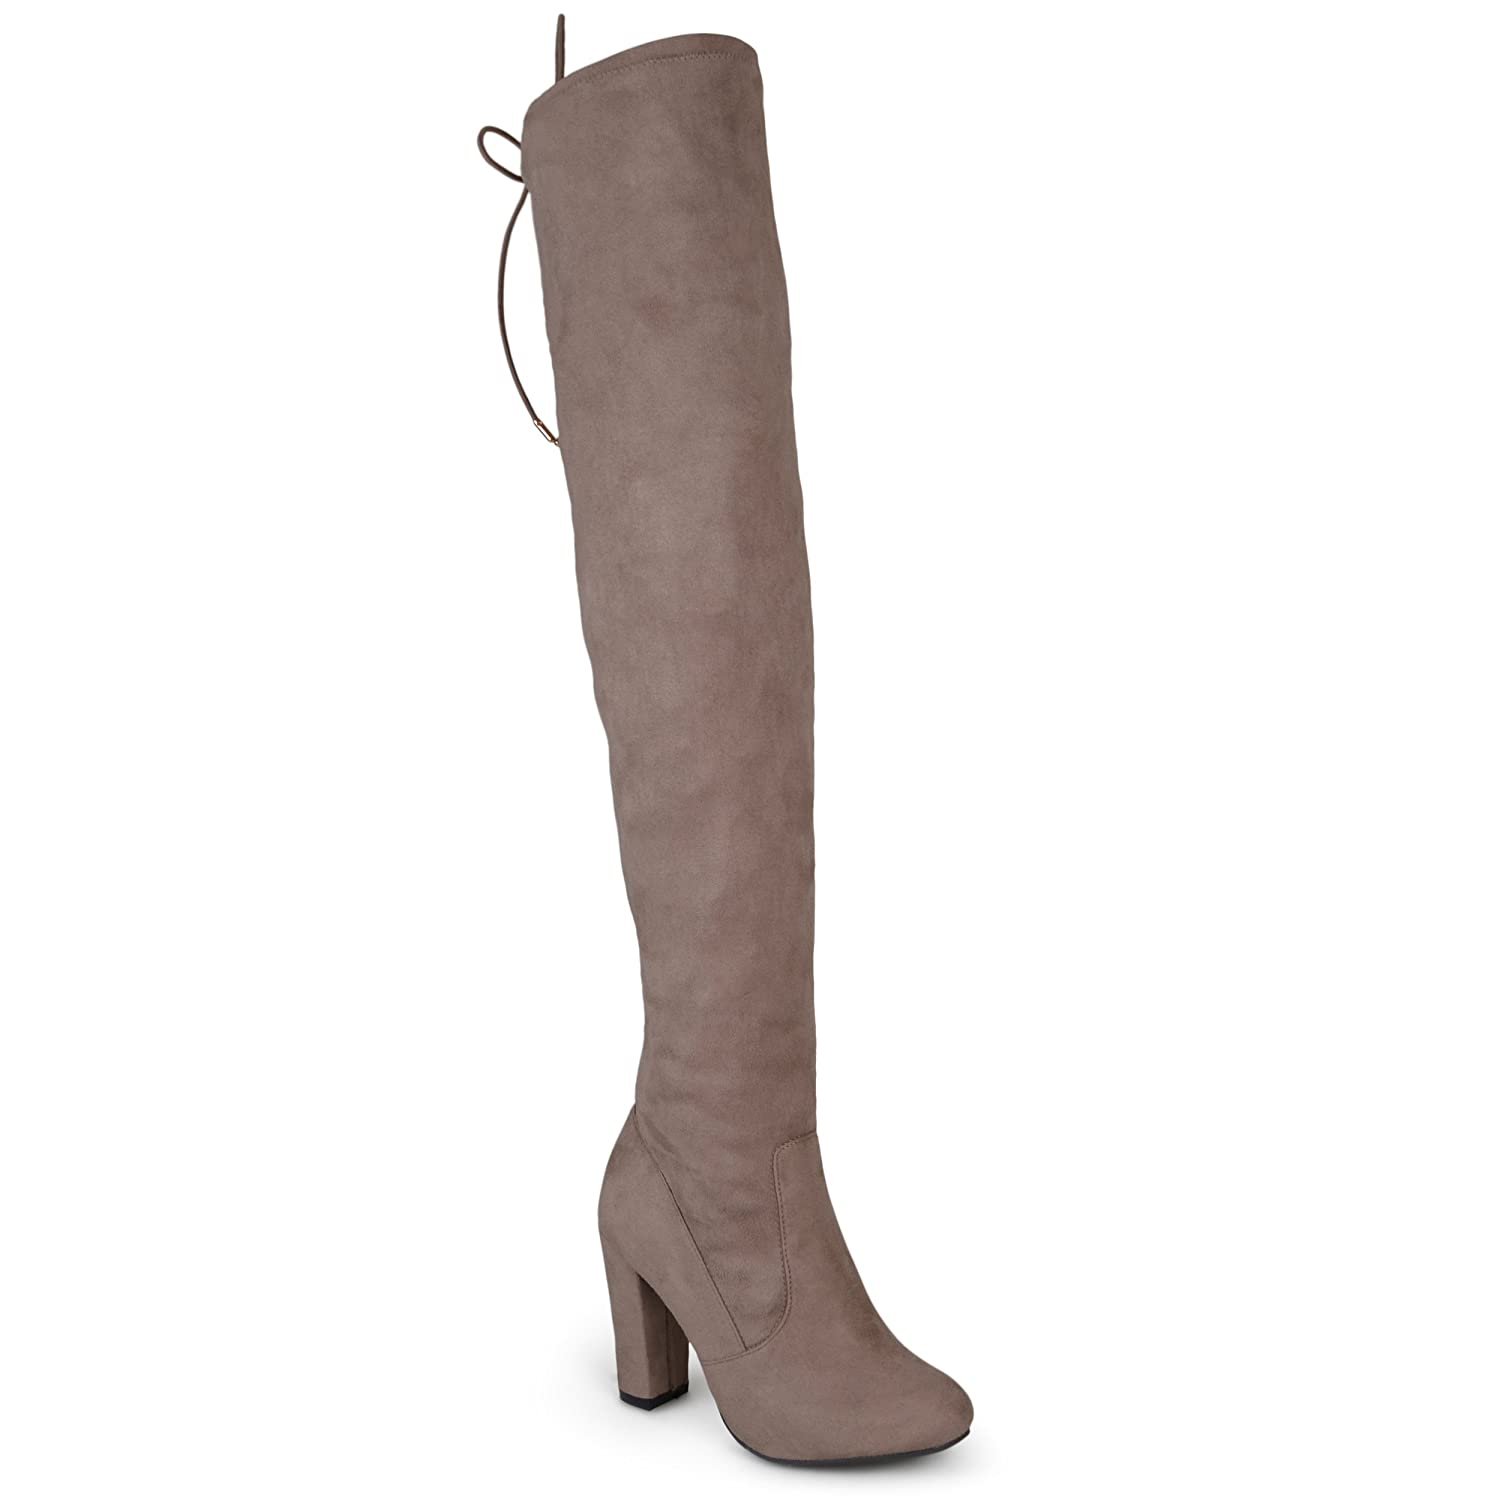 Journee Collection Womens Regular and Wide-Calf Faux Suede Over-The-Knee Boots B01I5ITOIW 8.5 B(M) US|Taupe